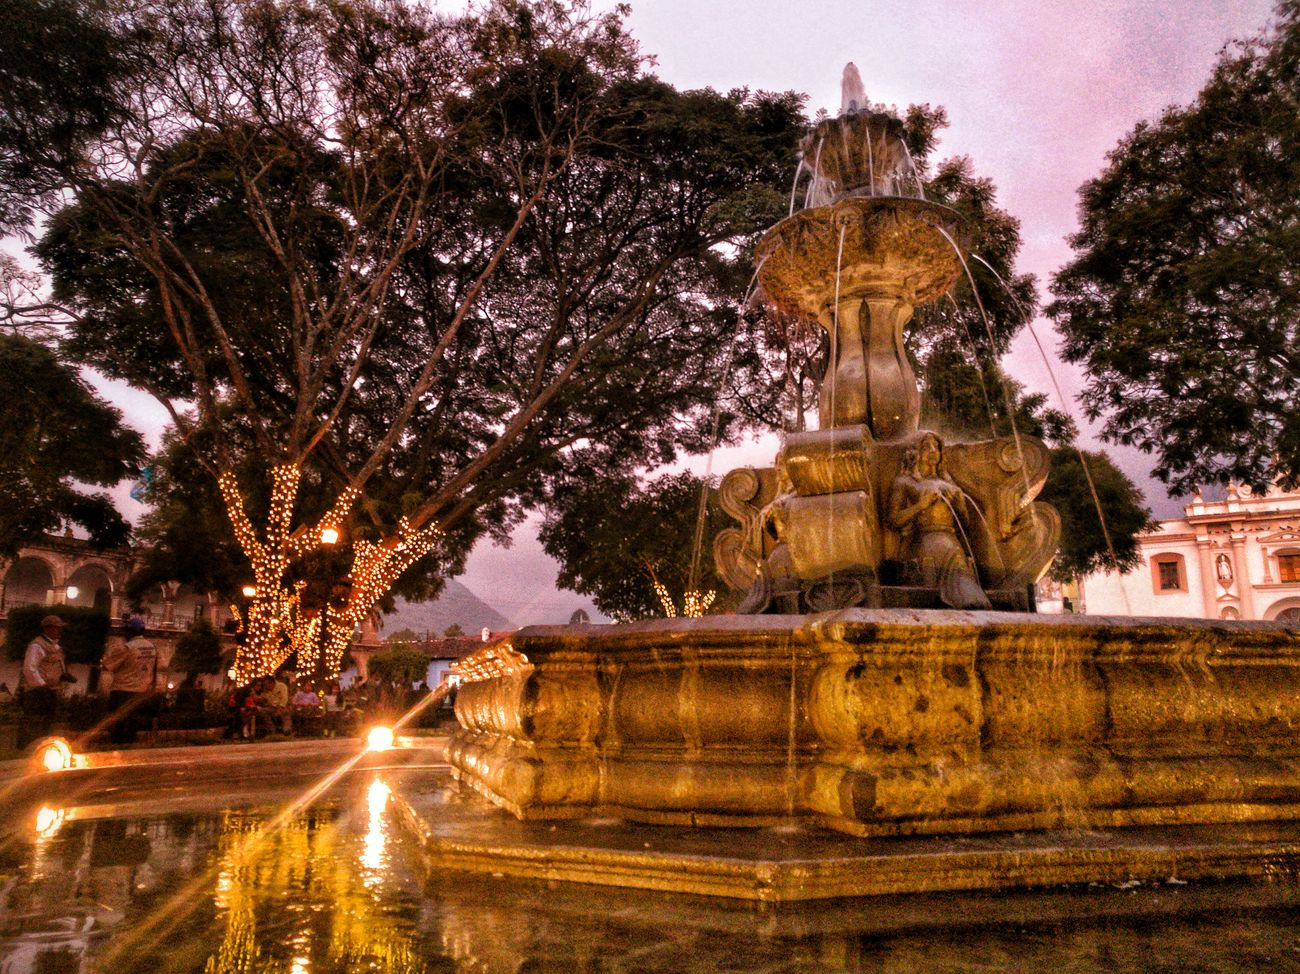 The mermaid fountain in the central square Guatebella Huawei P9 Leica PhonePhotography Architecture AntiguaGuatemala! ❤ UNESCO World Heritage Site Barroque